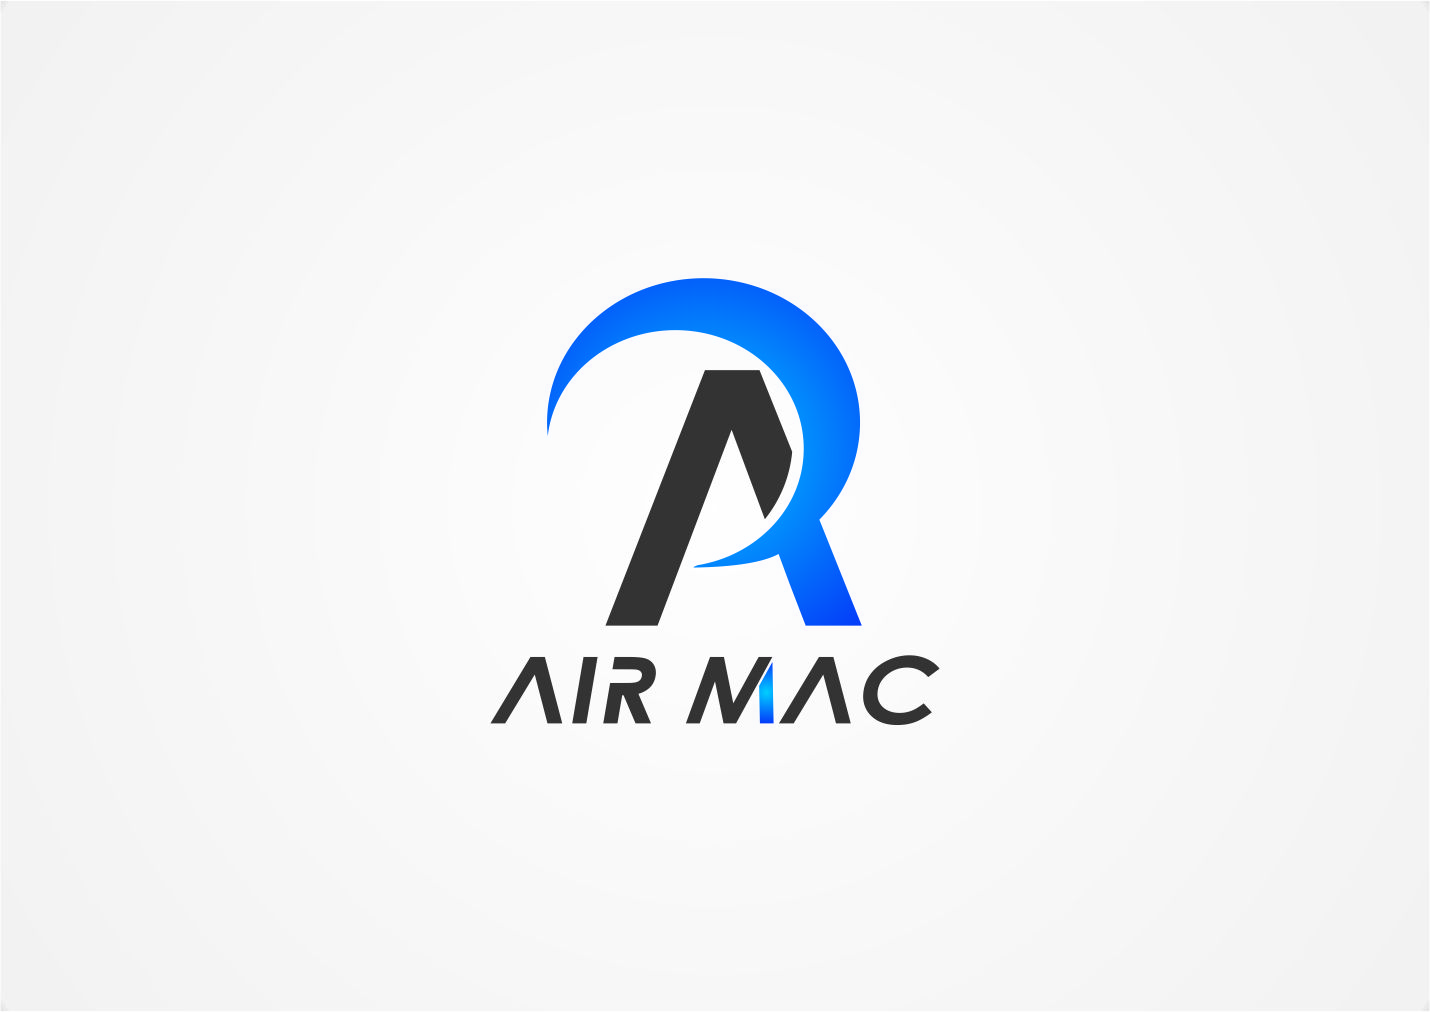 Logo Design by yanxsant - Entry No. 44 in the Logo Design Contest Unique Logo Design Wanted for Air Mac.